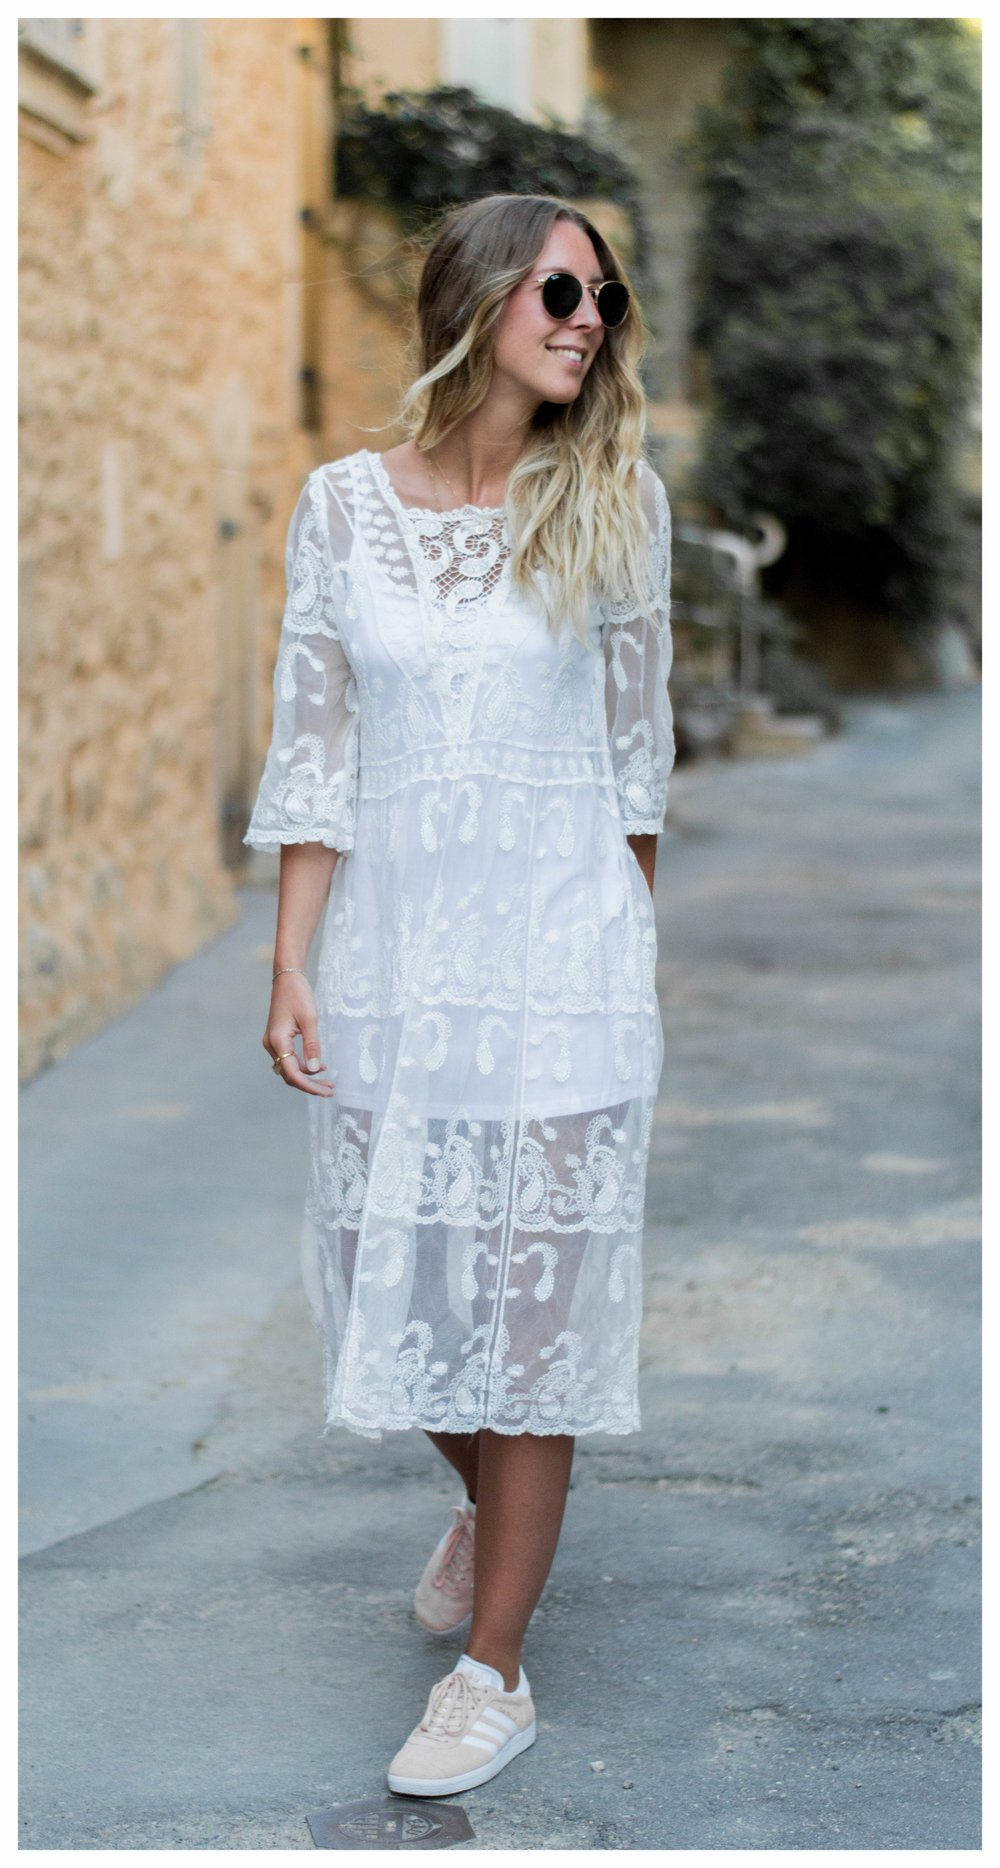 Cornillon White Dress June - OSIARAH.COM (7 of 27).jpg